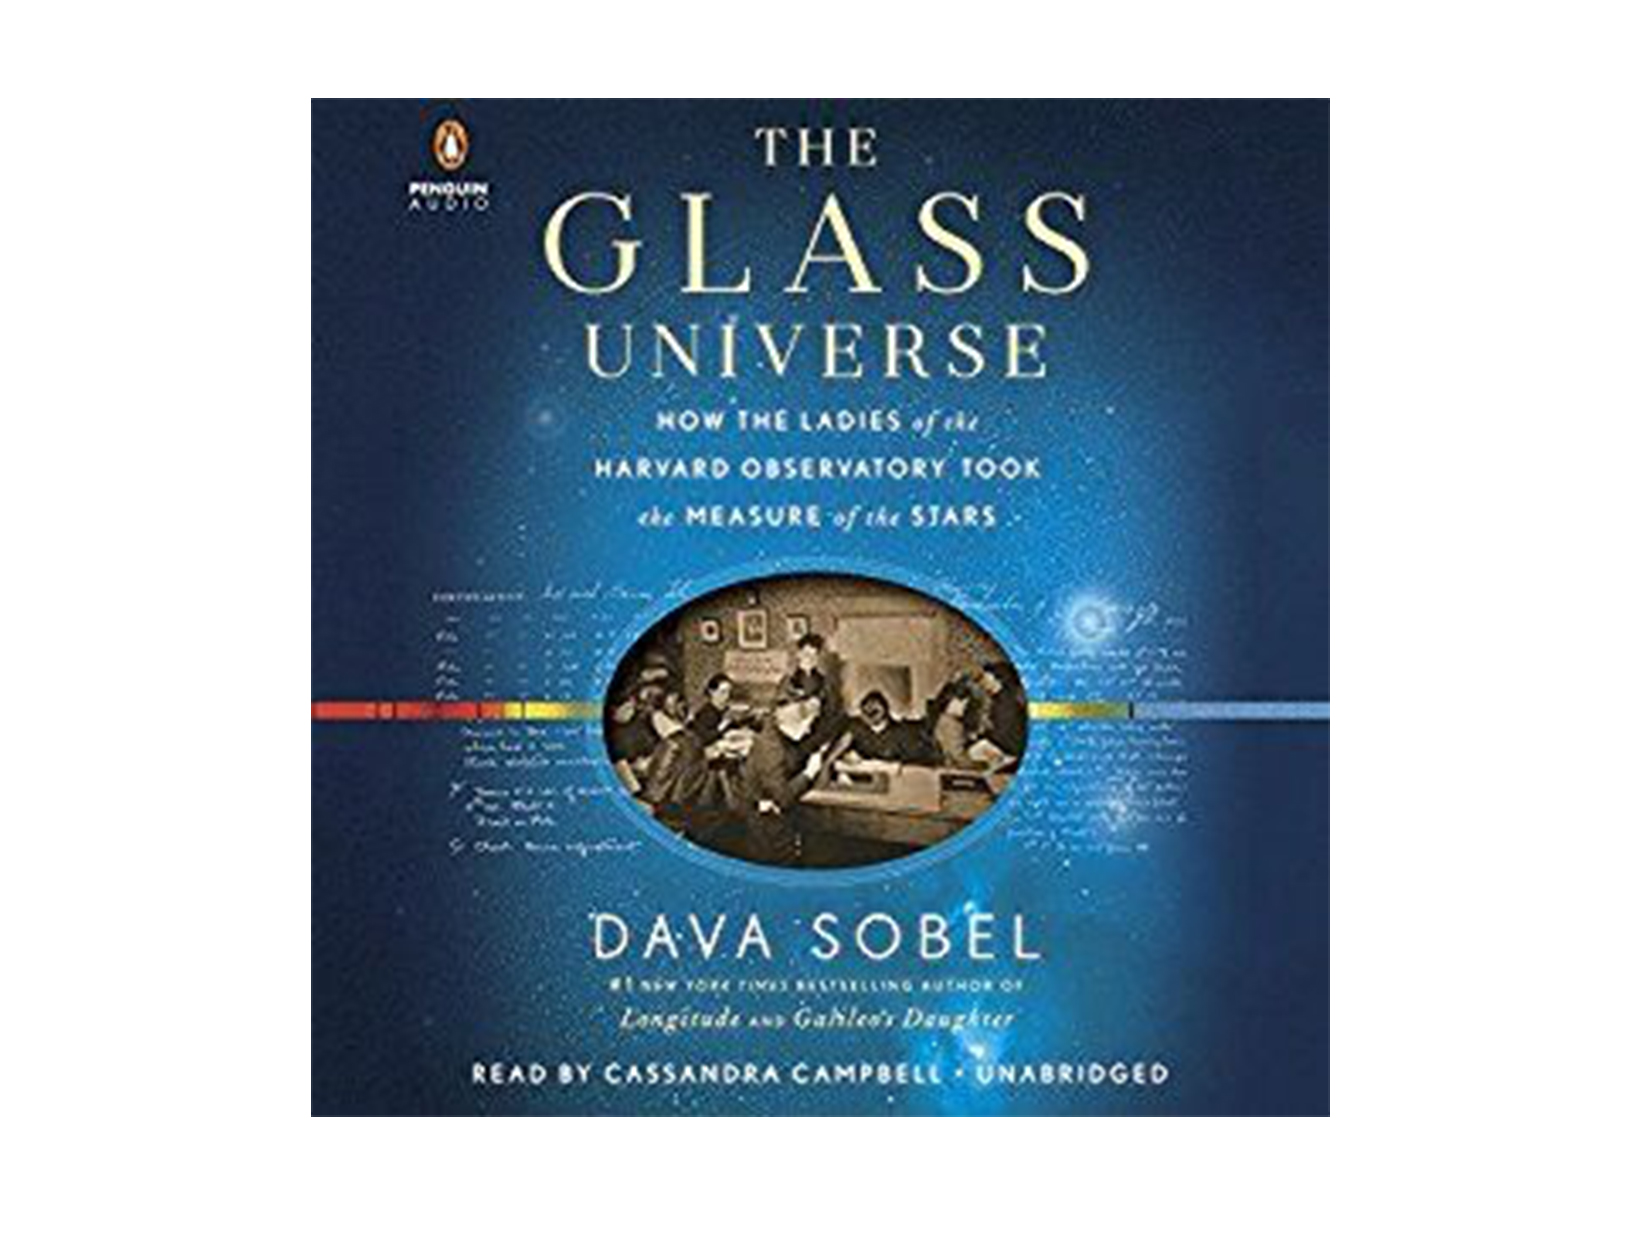 The Glass Universe by Dava Sobel, read by Cassandra Campbell